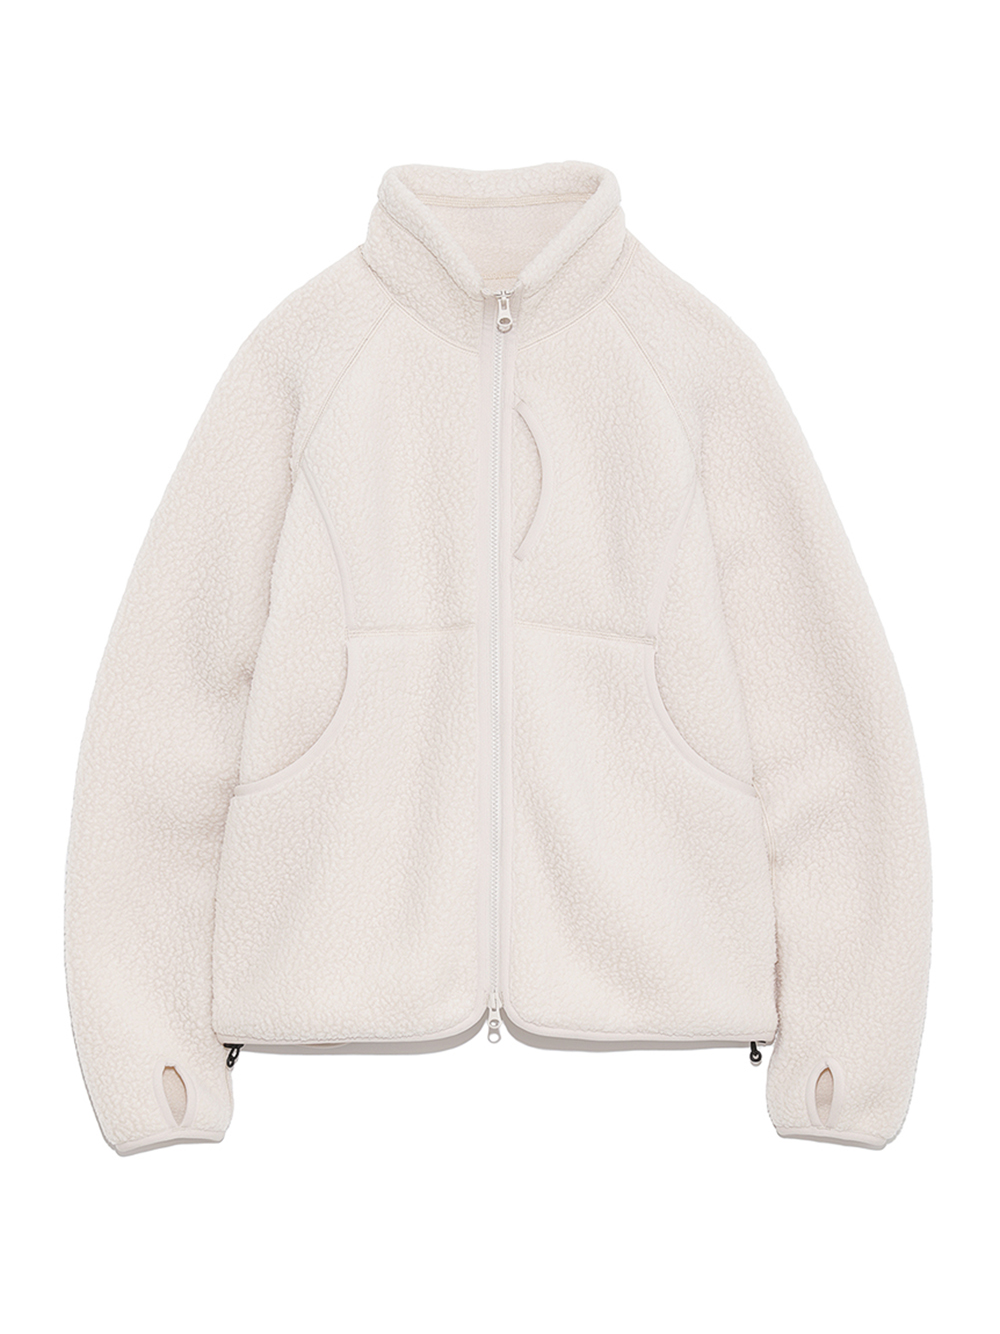 【emmi×Snowpeak】Thermal Boa Fleece JK